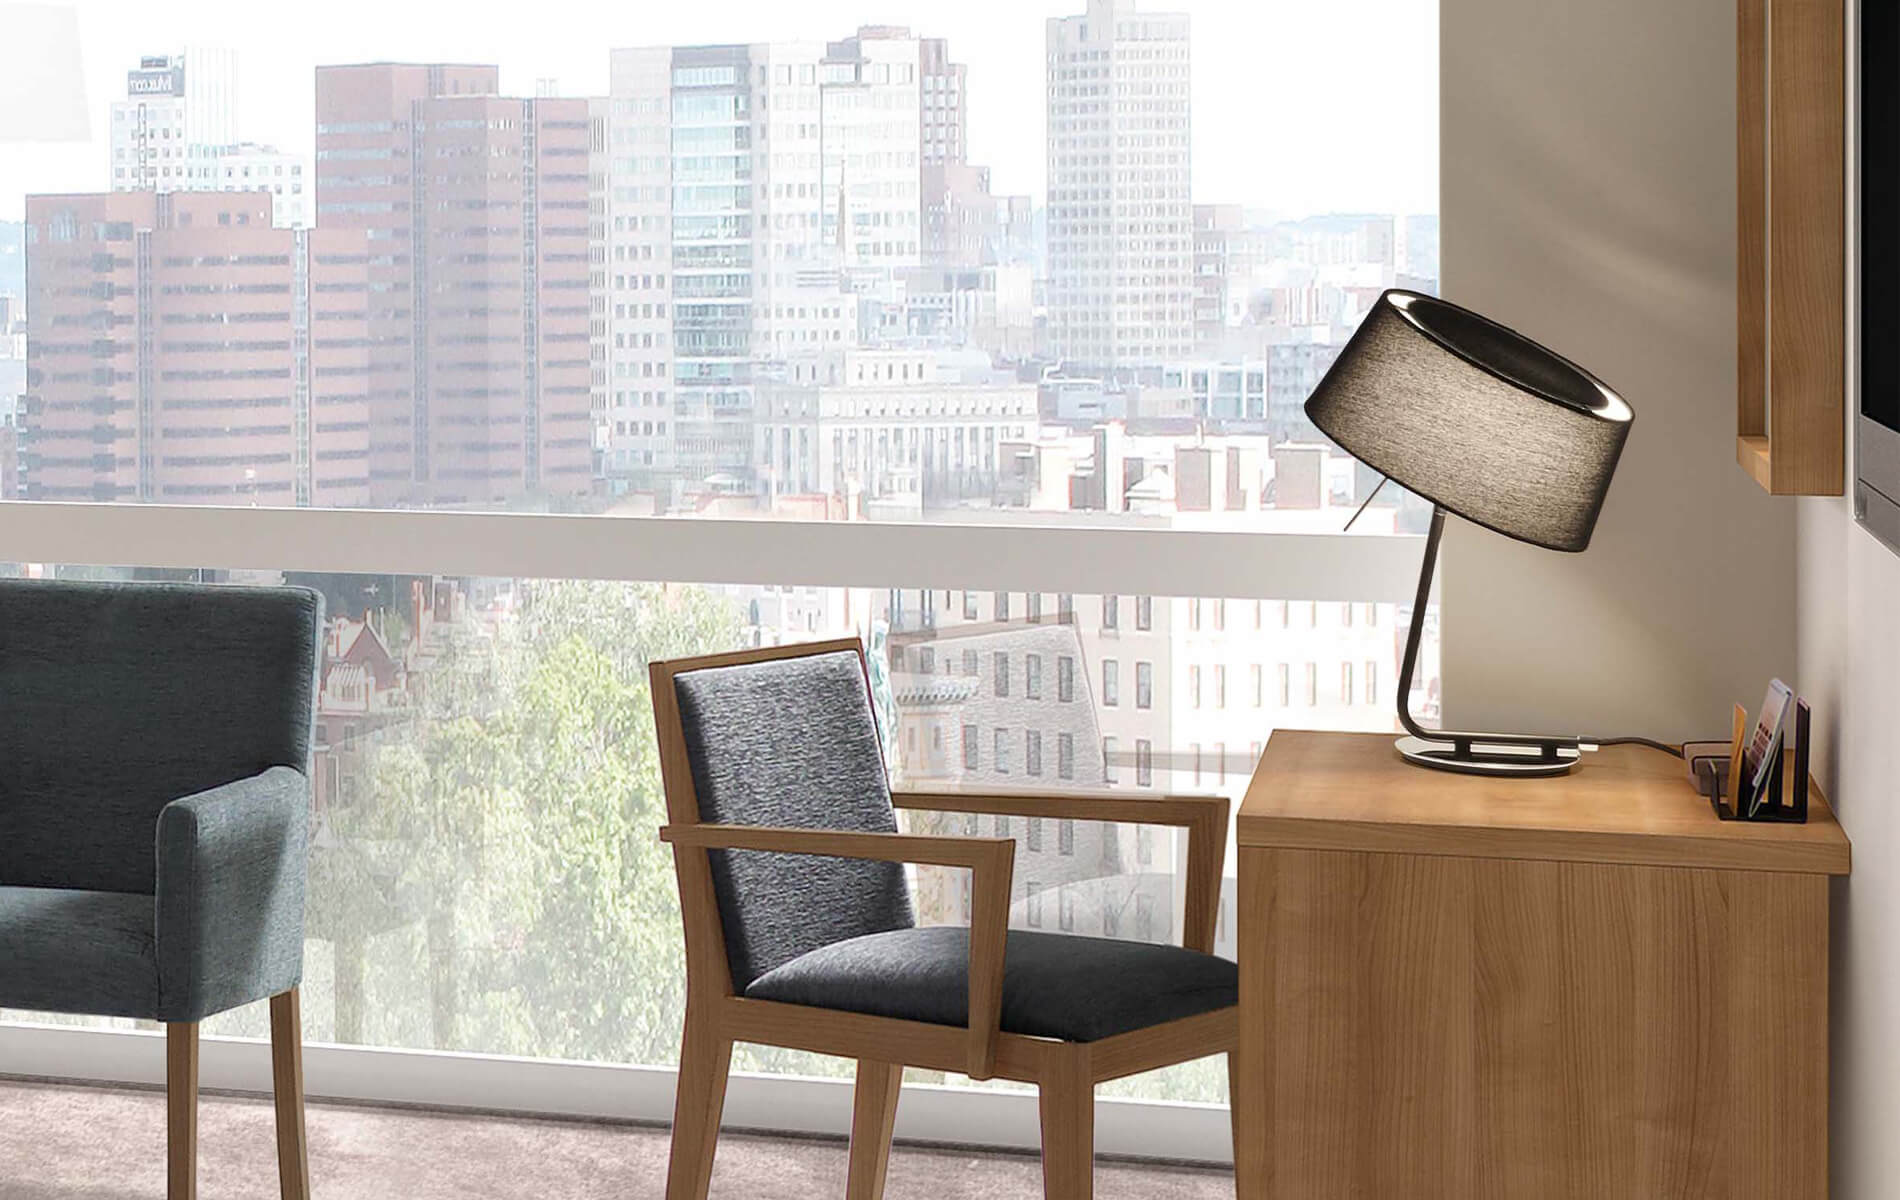 More information of Faro HOTEL table lamp